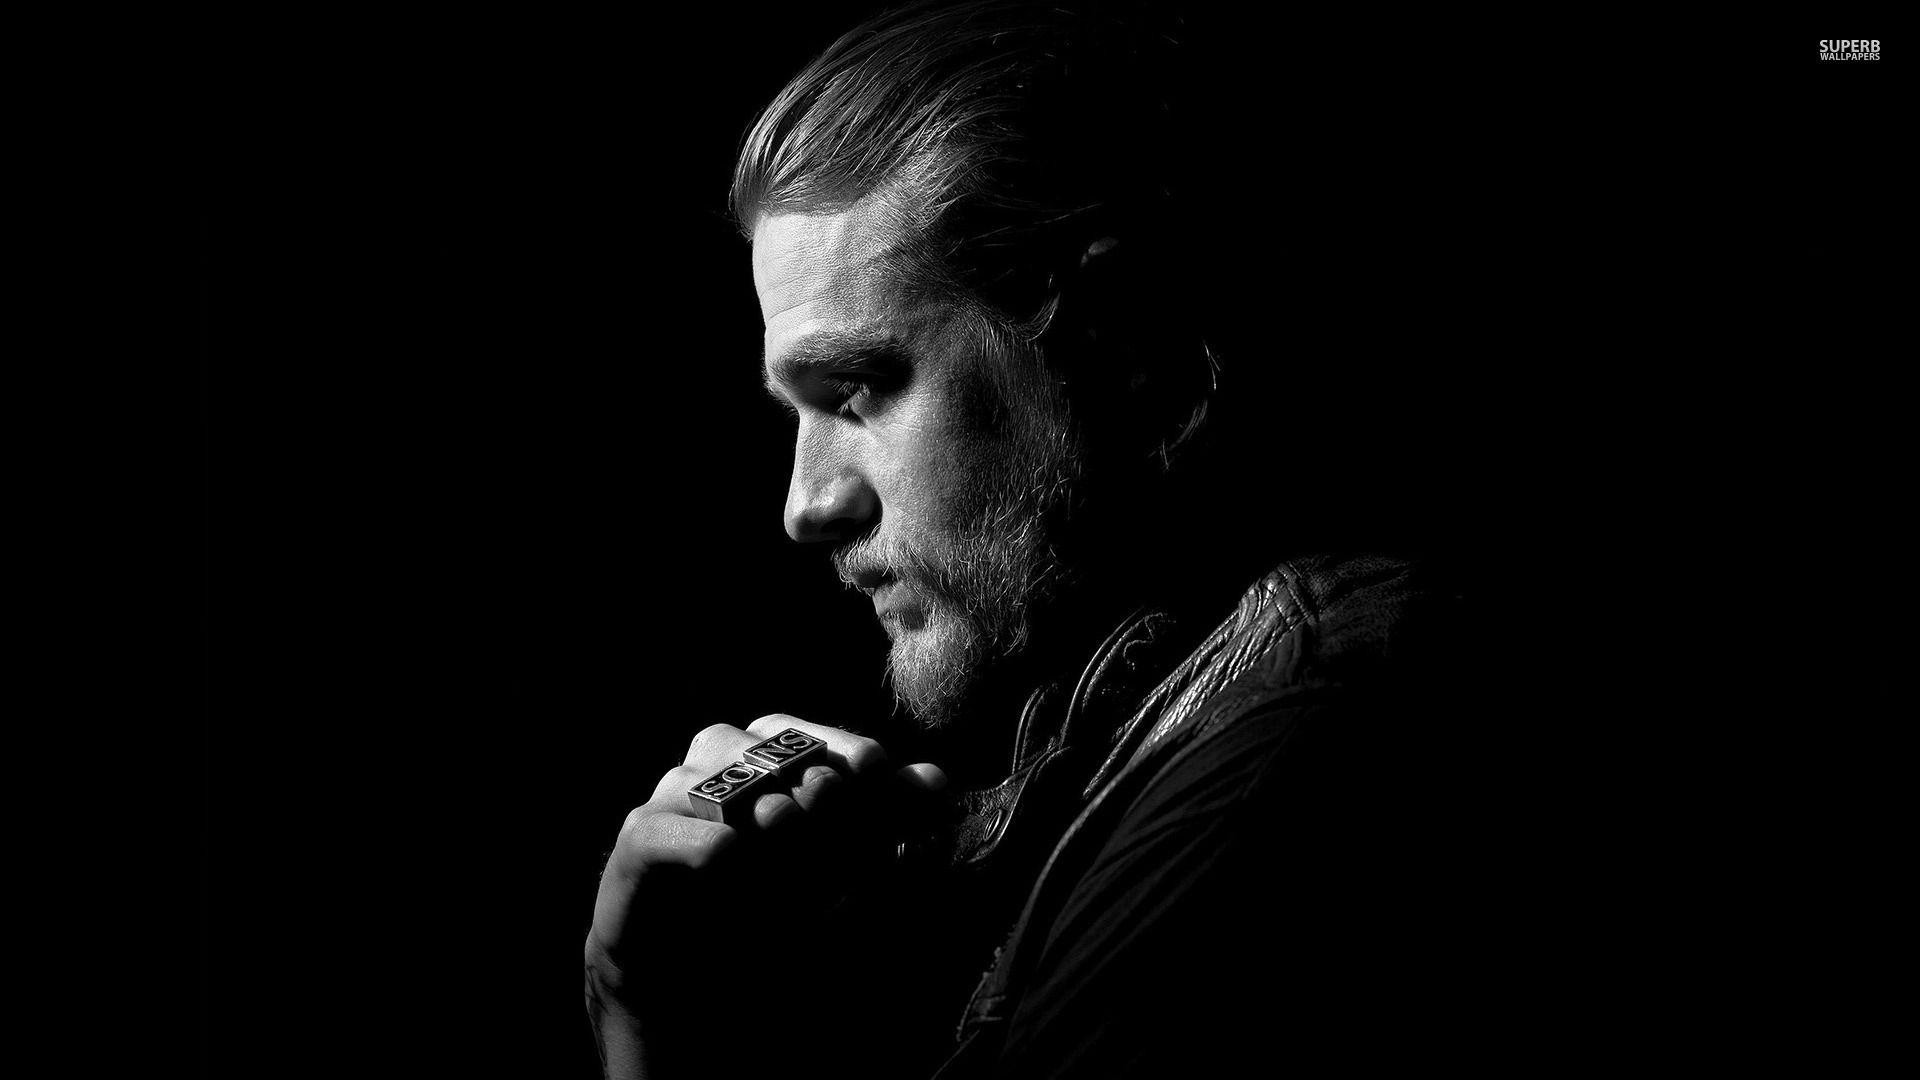 1920x1080 Jax Teller - Sons of Anarchy wallpaper - TV Show wallpapers - #